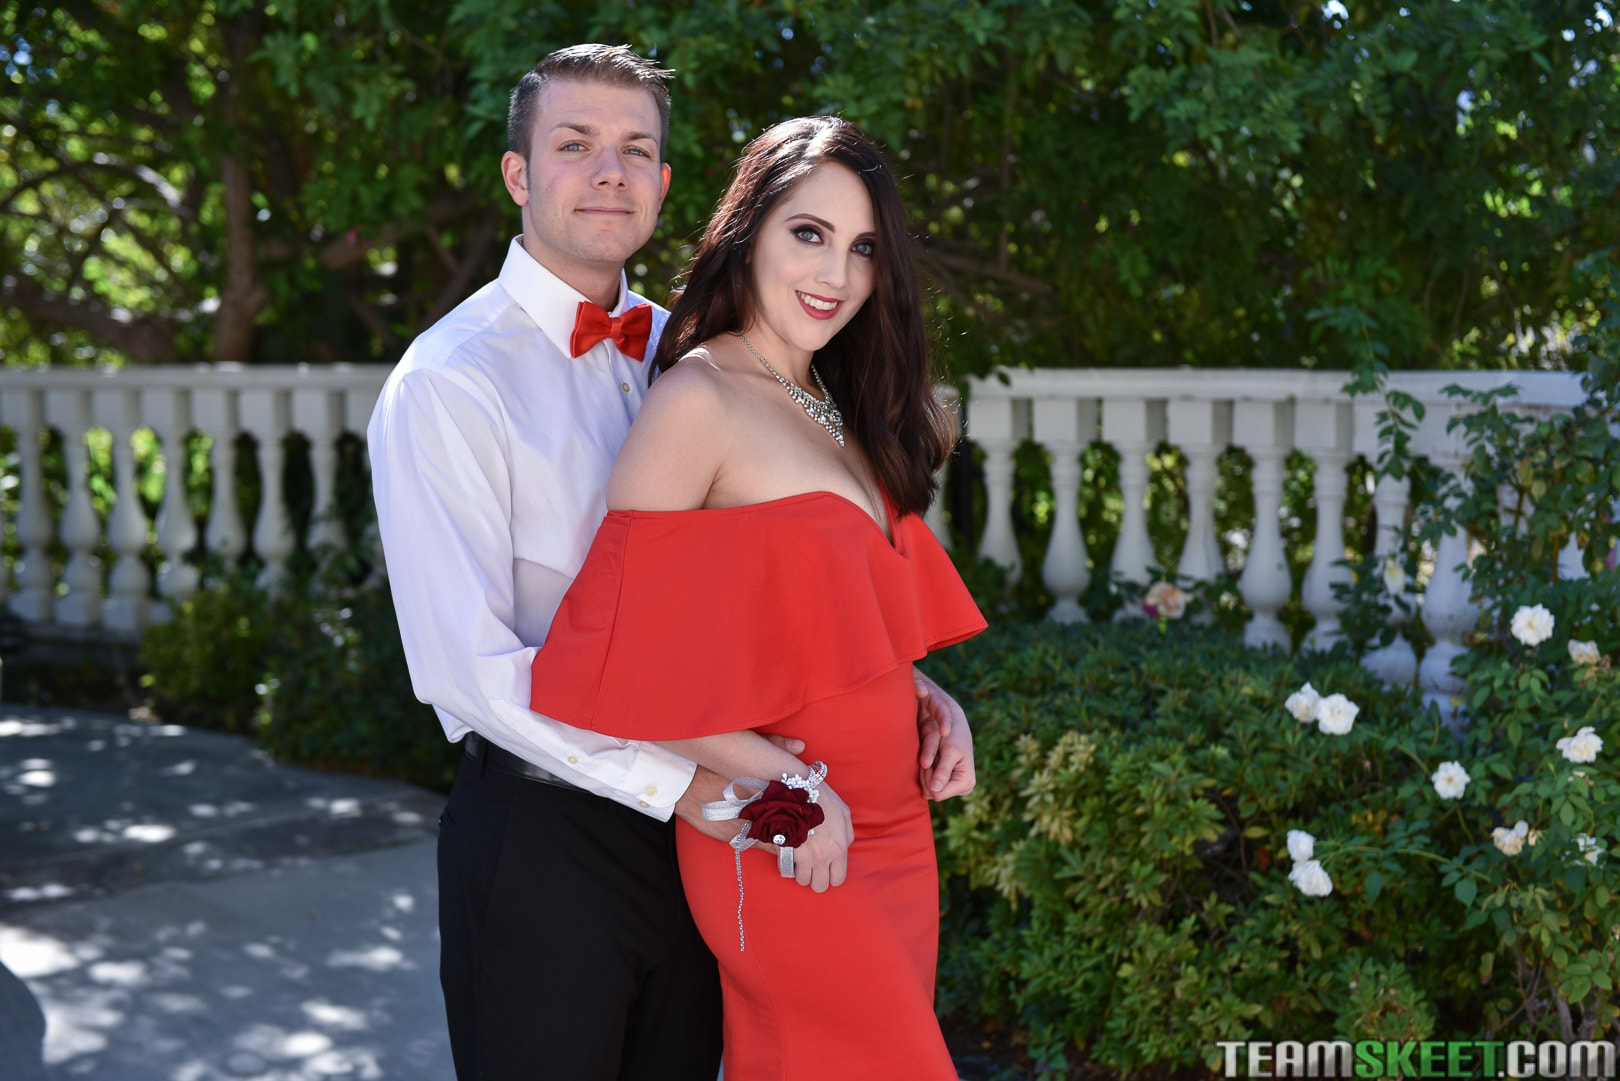 Team Skeet 'My Anal Prom Date' starring Nickey Huntsman (photo 1)